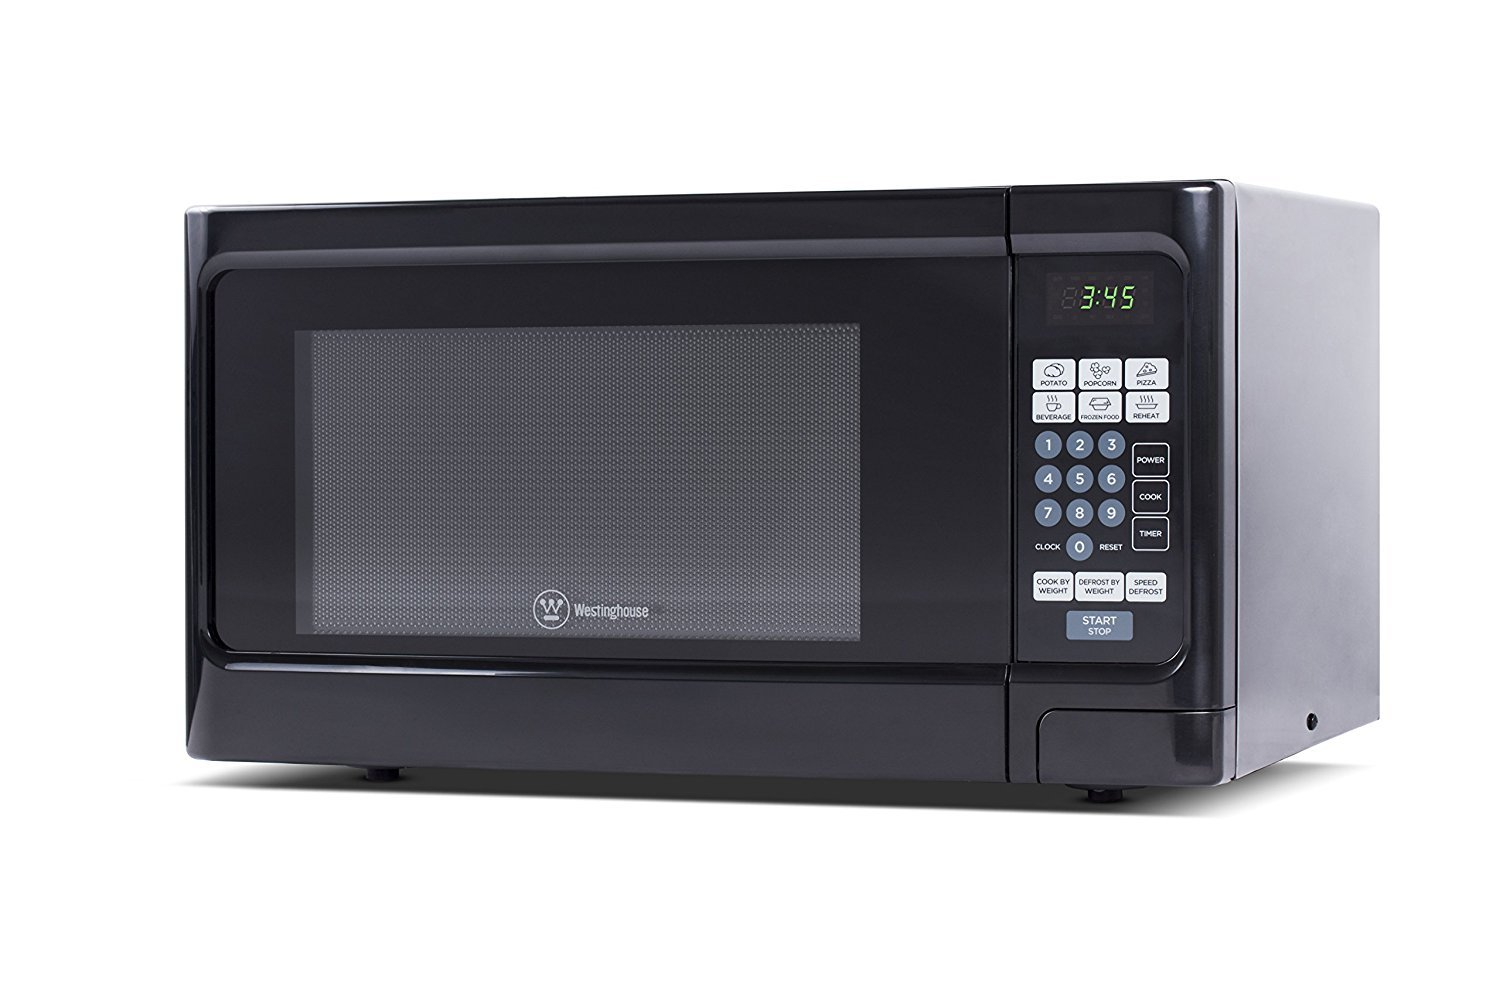 Microwave Oven Compact Countertop Electric Black 1000 Watt 1.1 cu. ft. Cookware With Free Pot Holders